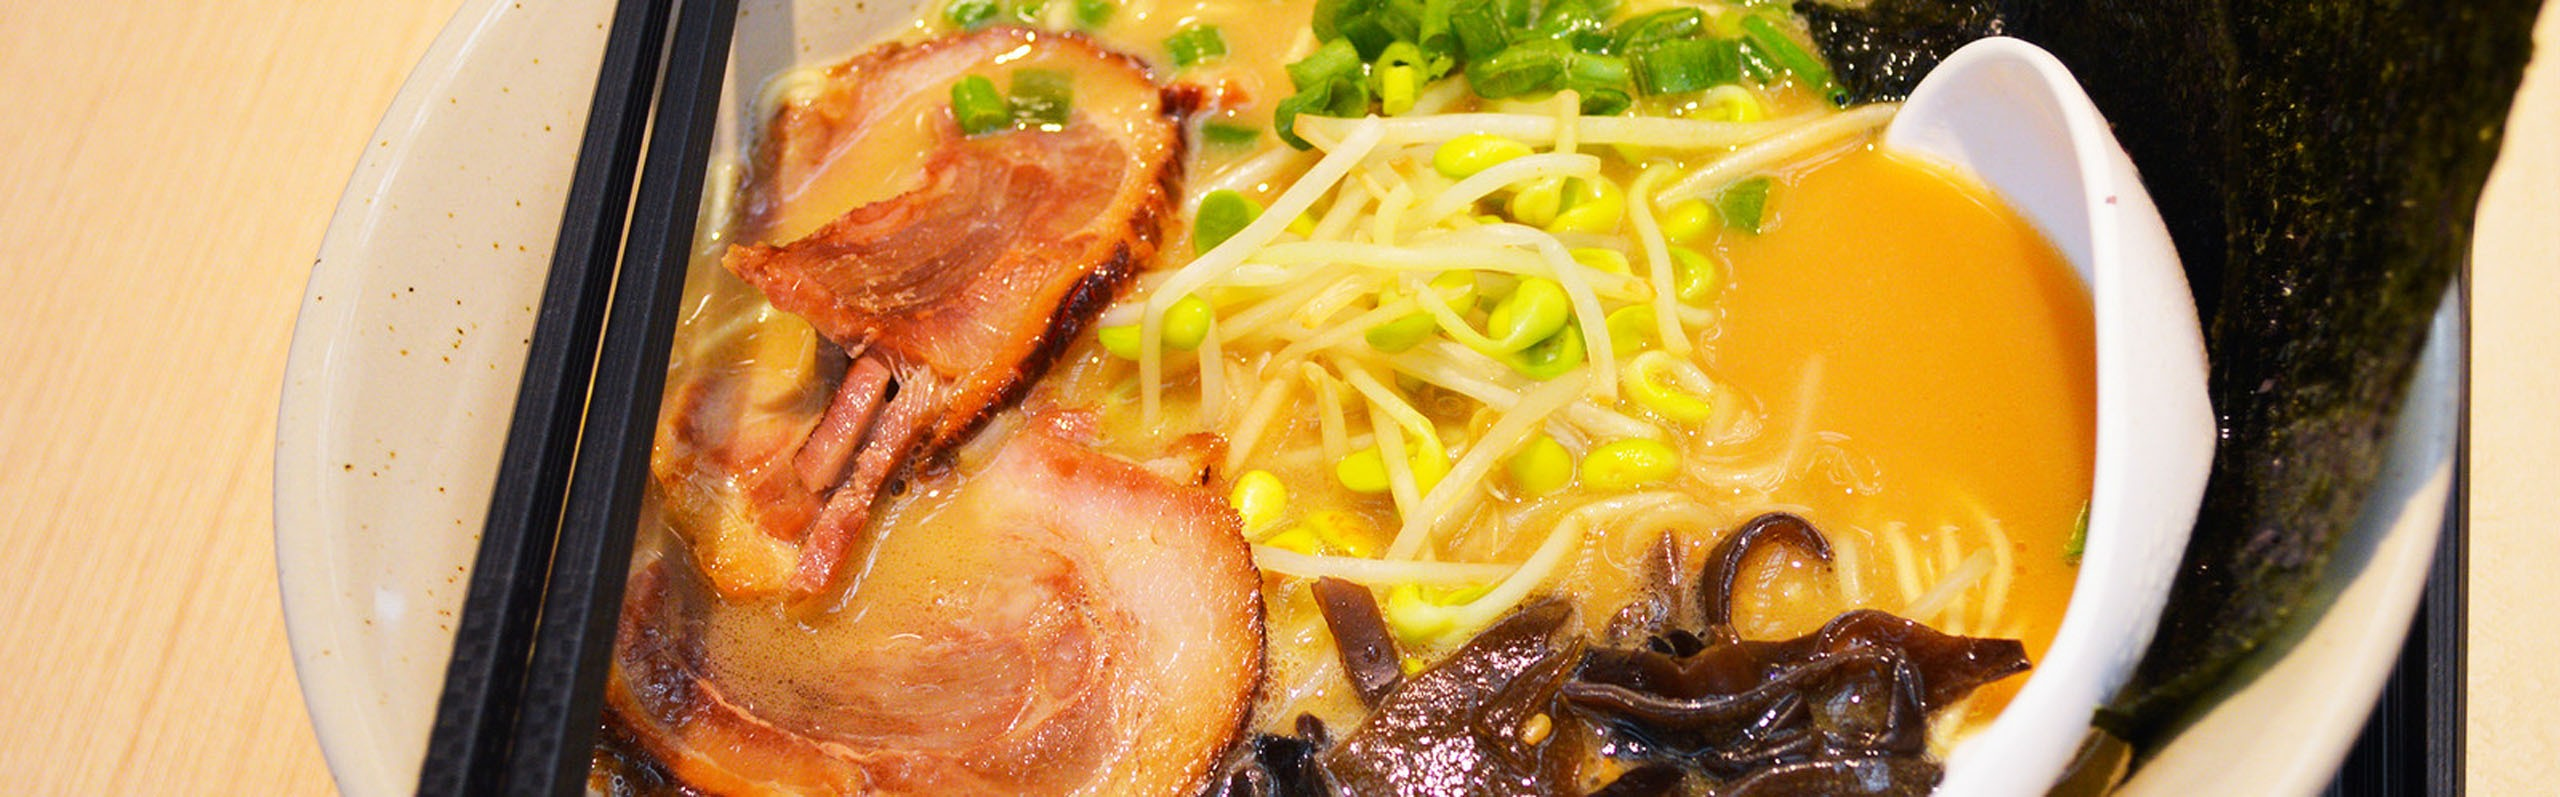 Ramen vs. Pho - 4 Major Differences You Should Know